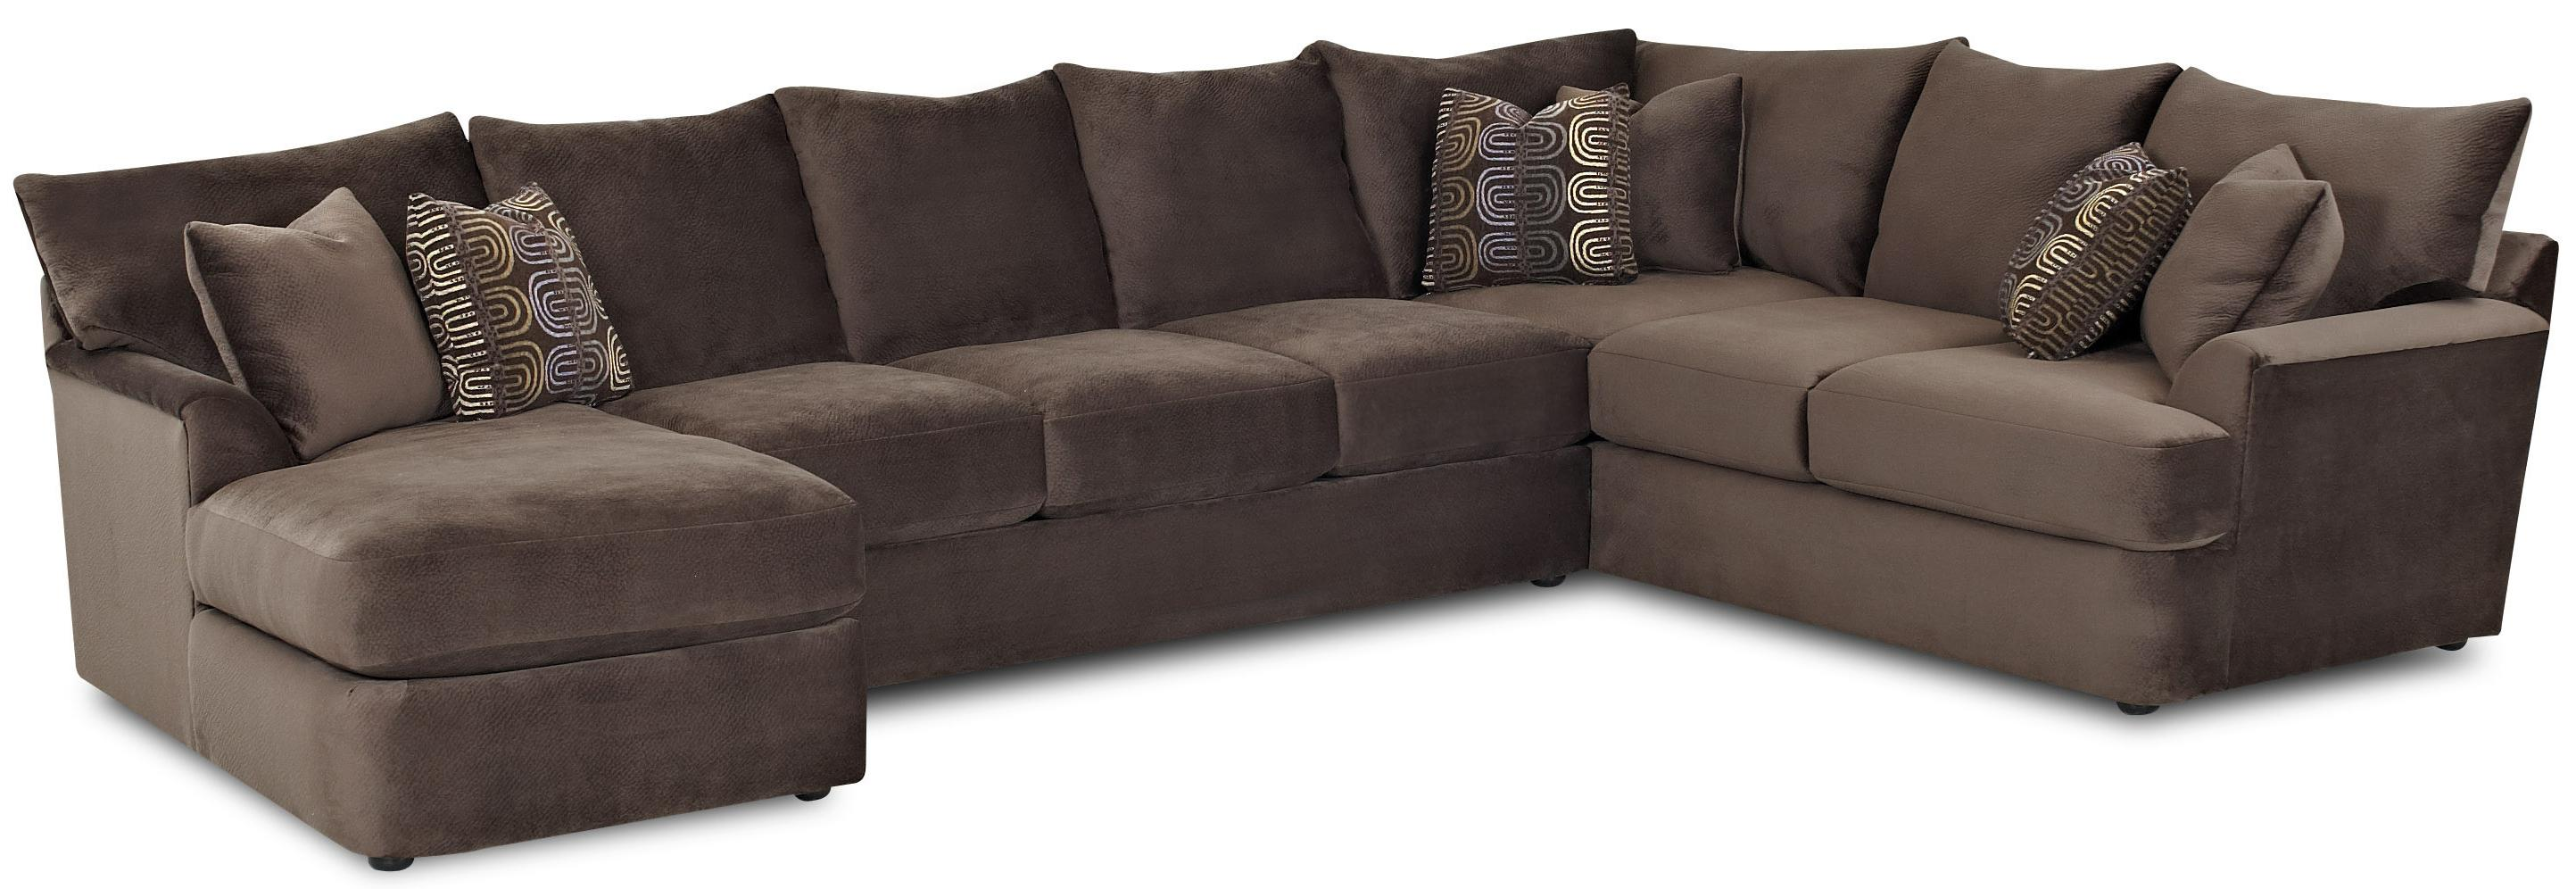 L Shaped Sectional Sofa with Left Chaise by Klaussner